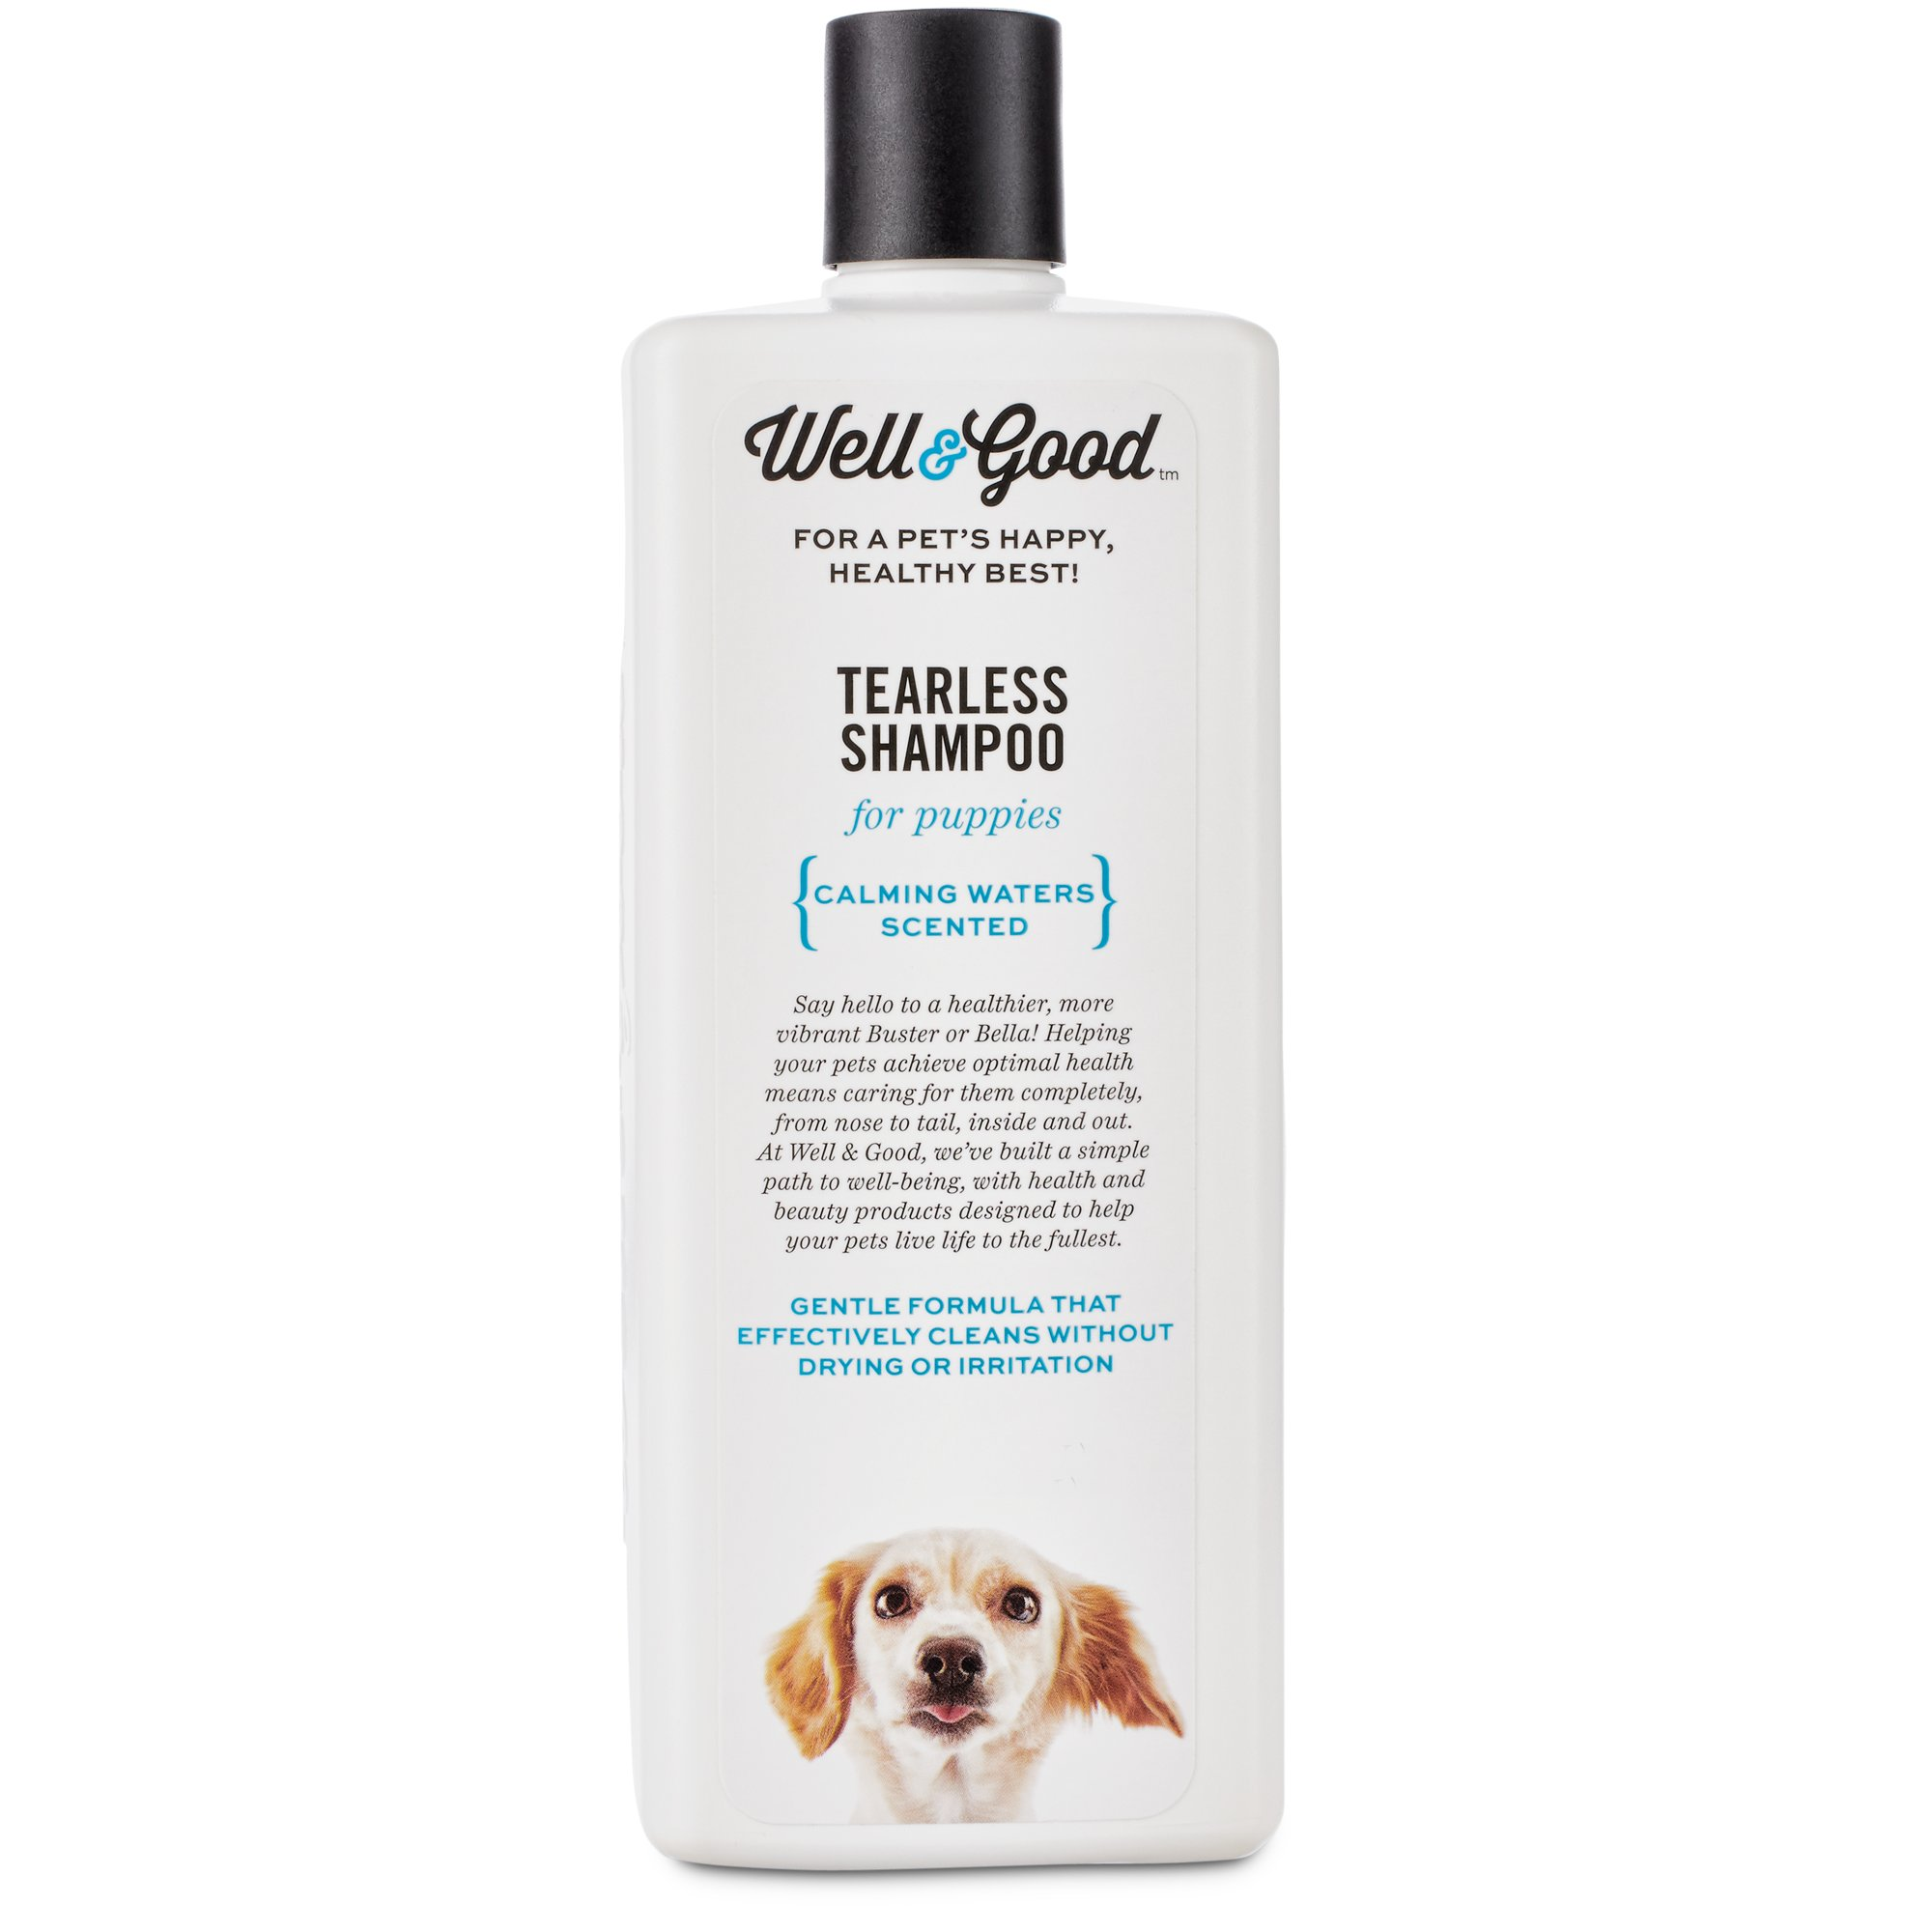 Well & Good Tearless Puppy Shampoo